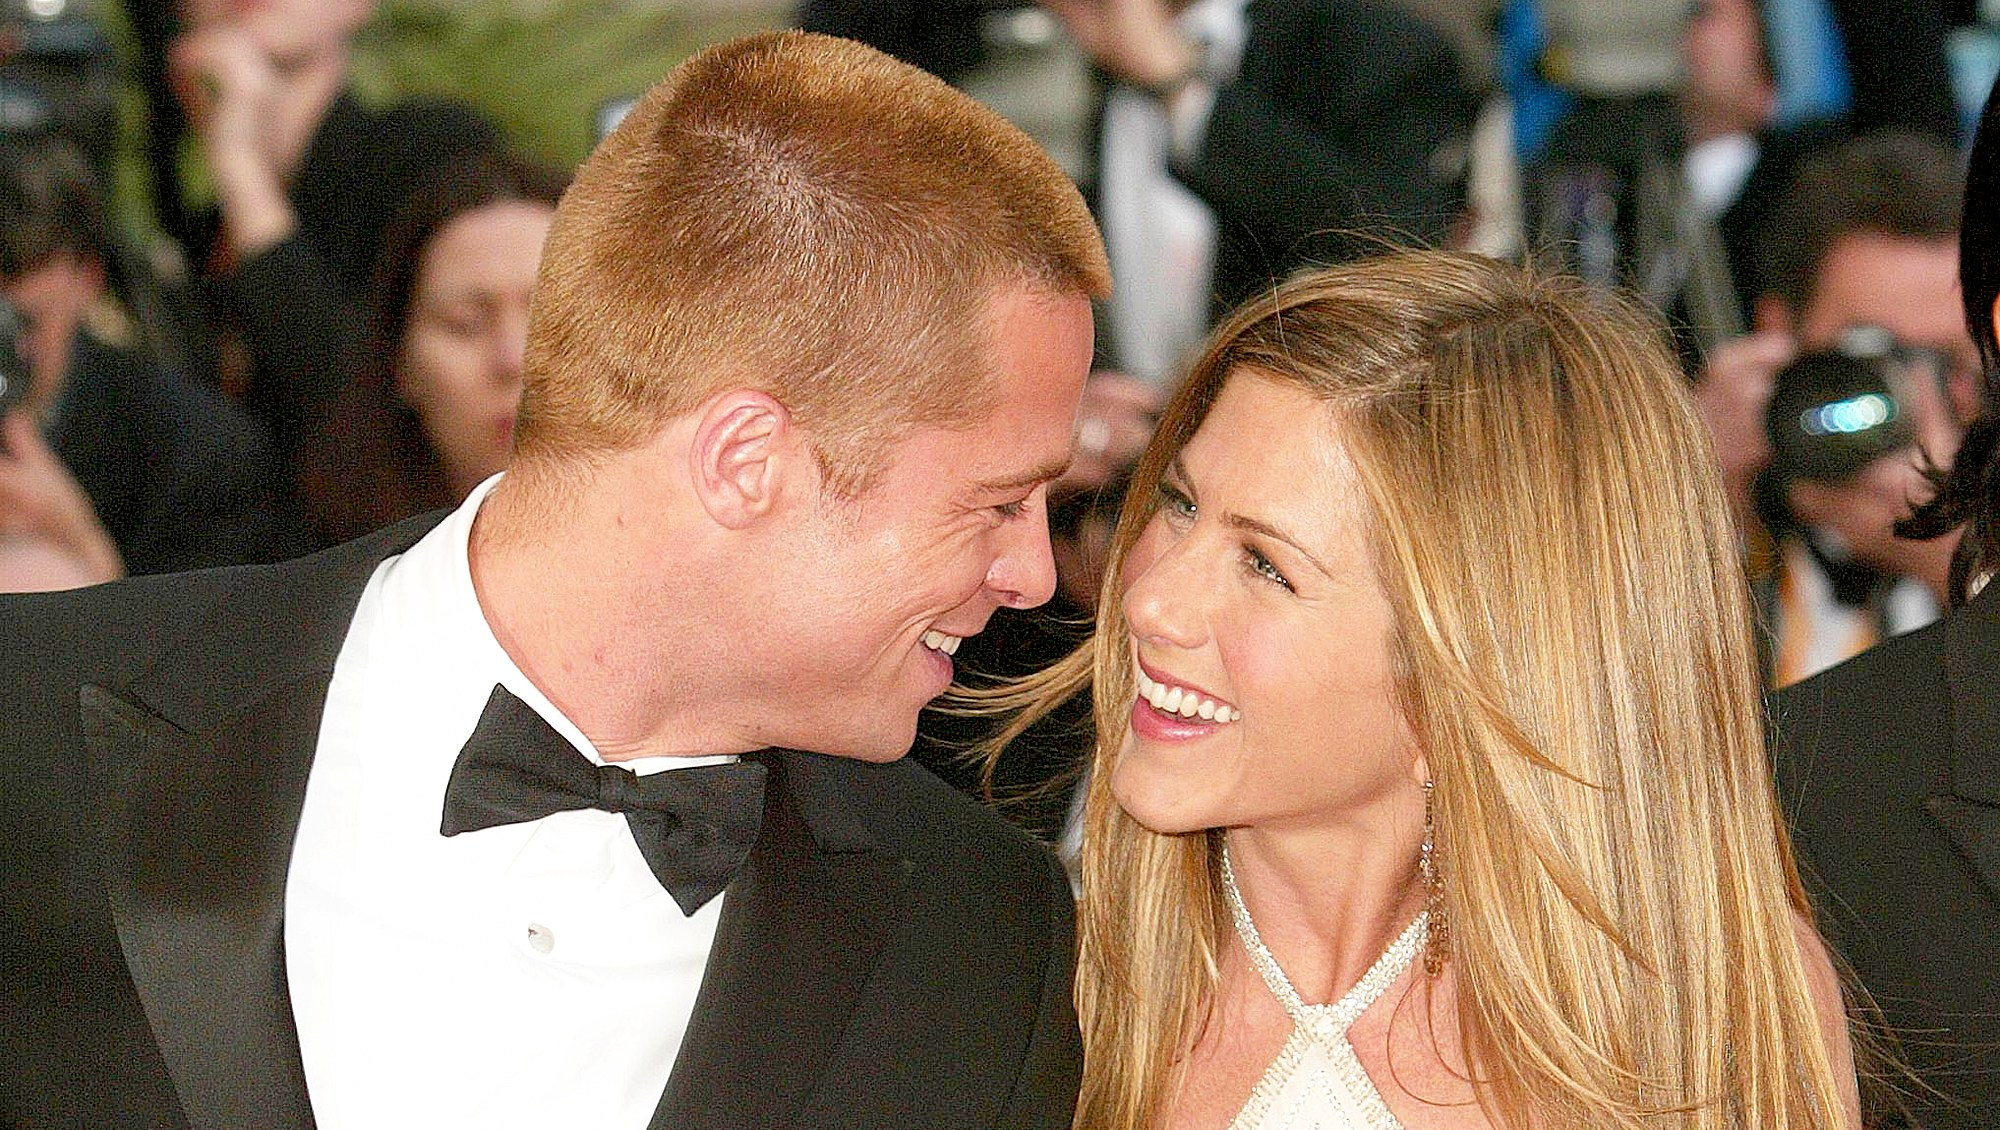 """Brad Pitt and Jennifer Aniston attend the 2004 Premiere of the epic movie """"Troy"""" at Le Palais de Festival in Cannes, France."""